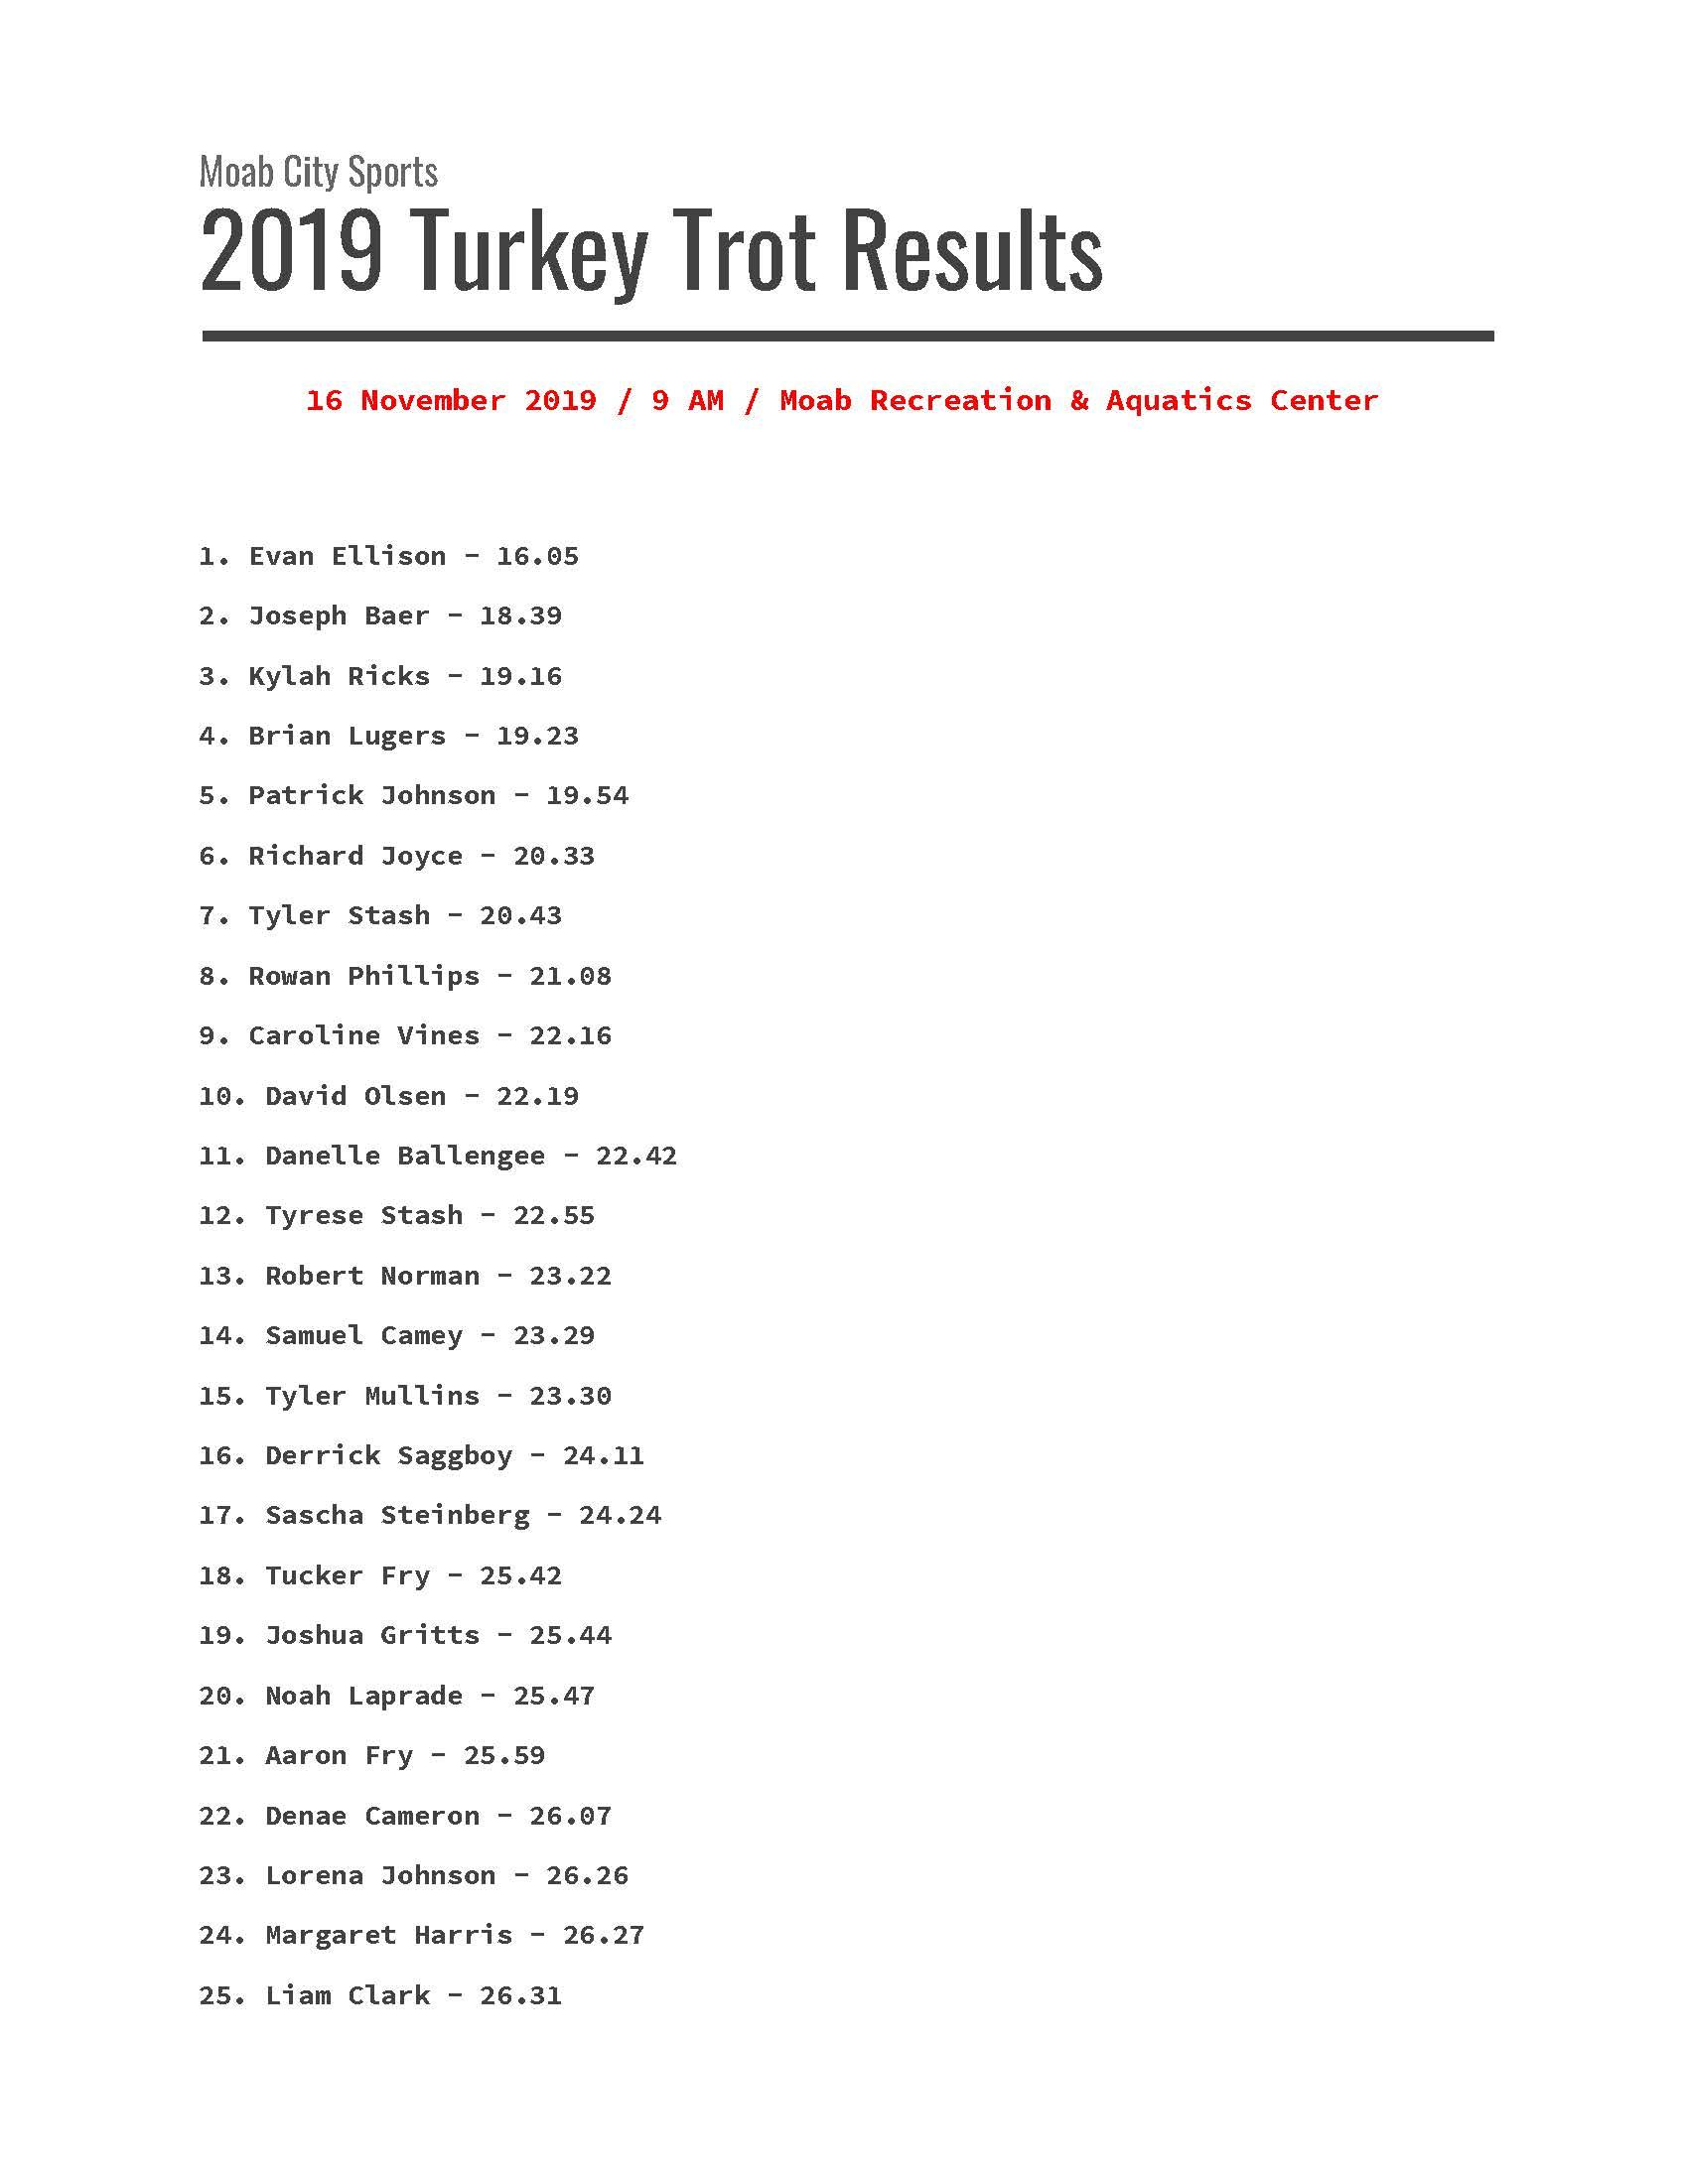 Turkey Trot 2019 Results _Page_1